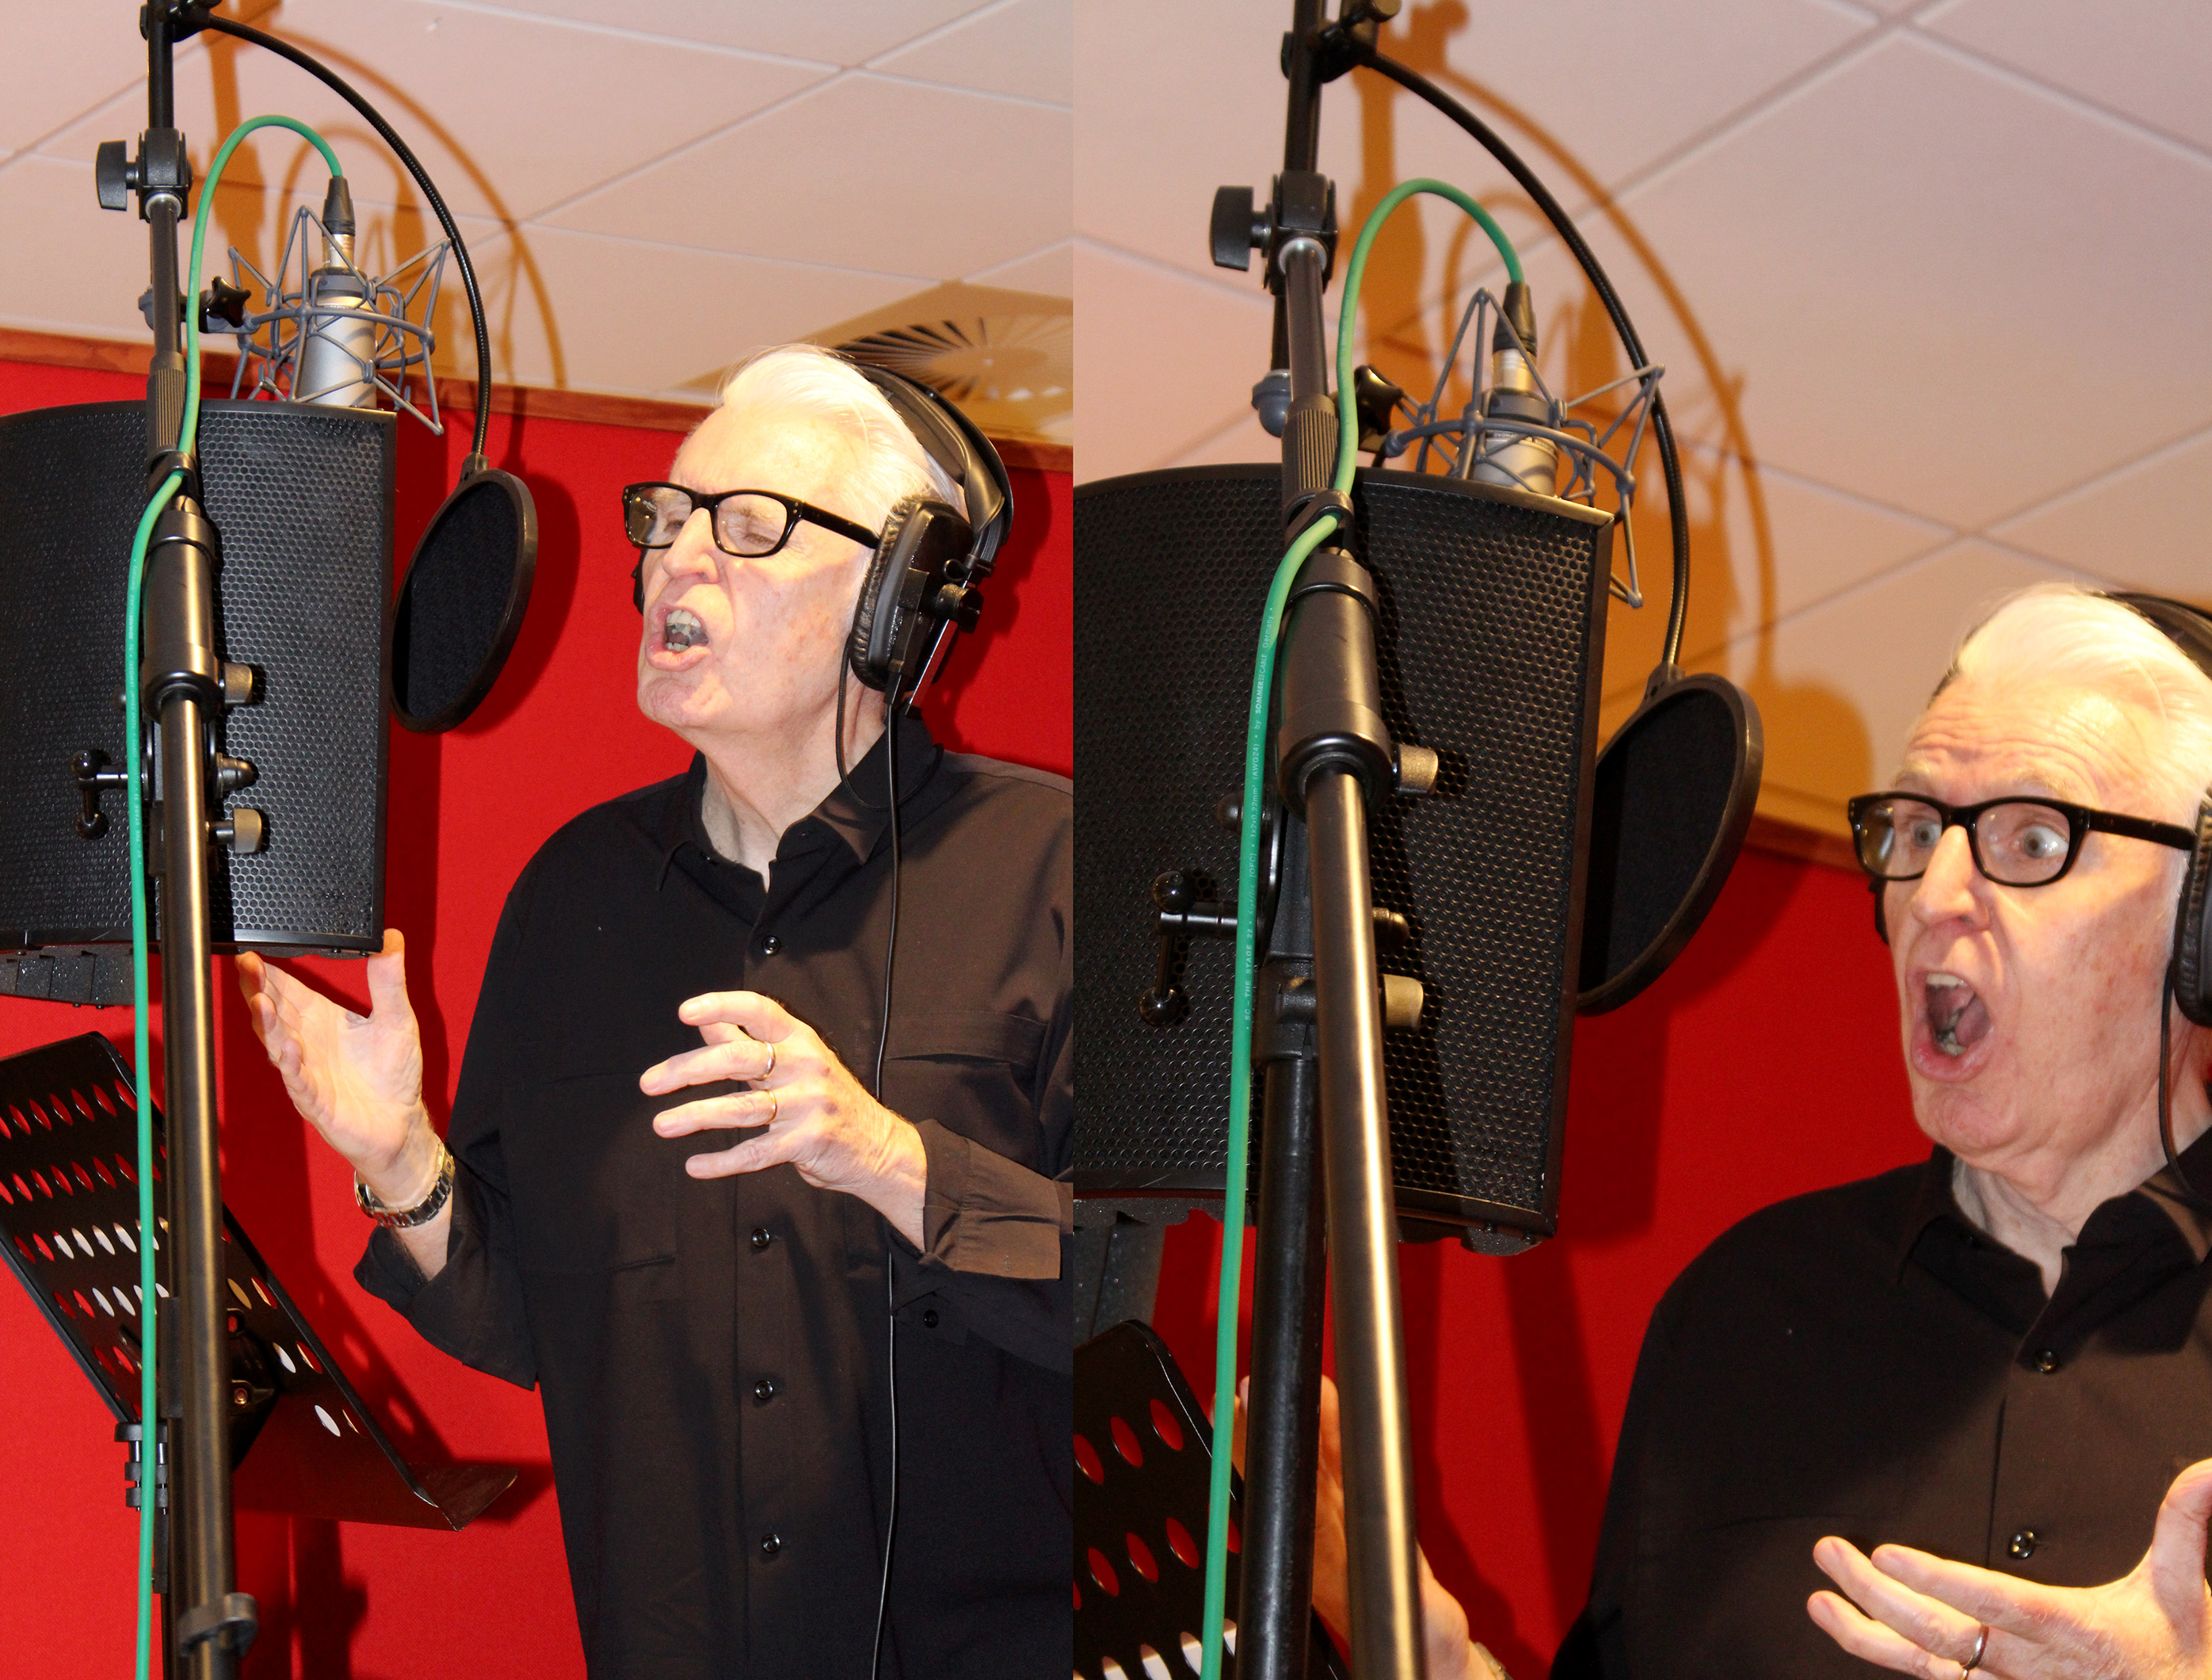 Mike McCartney recording the voices for his 'Weirdo' series of sketches